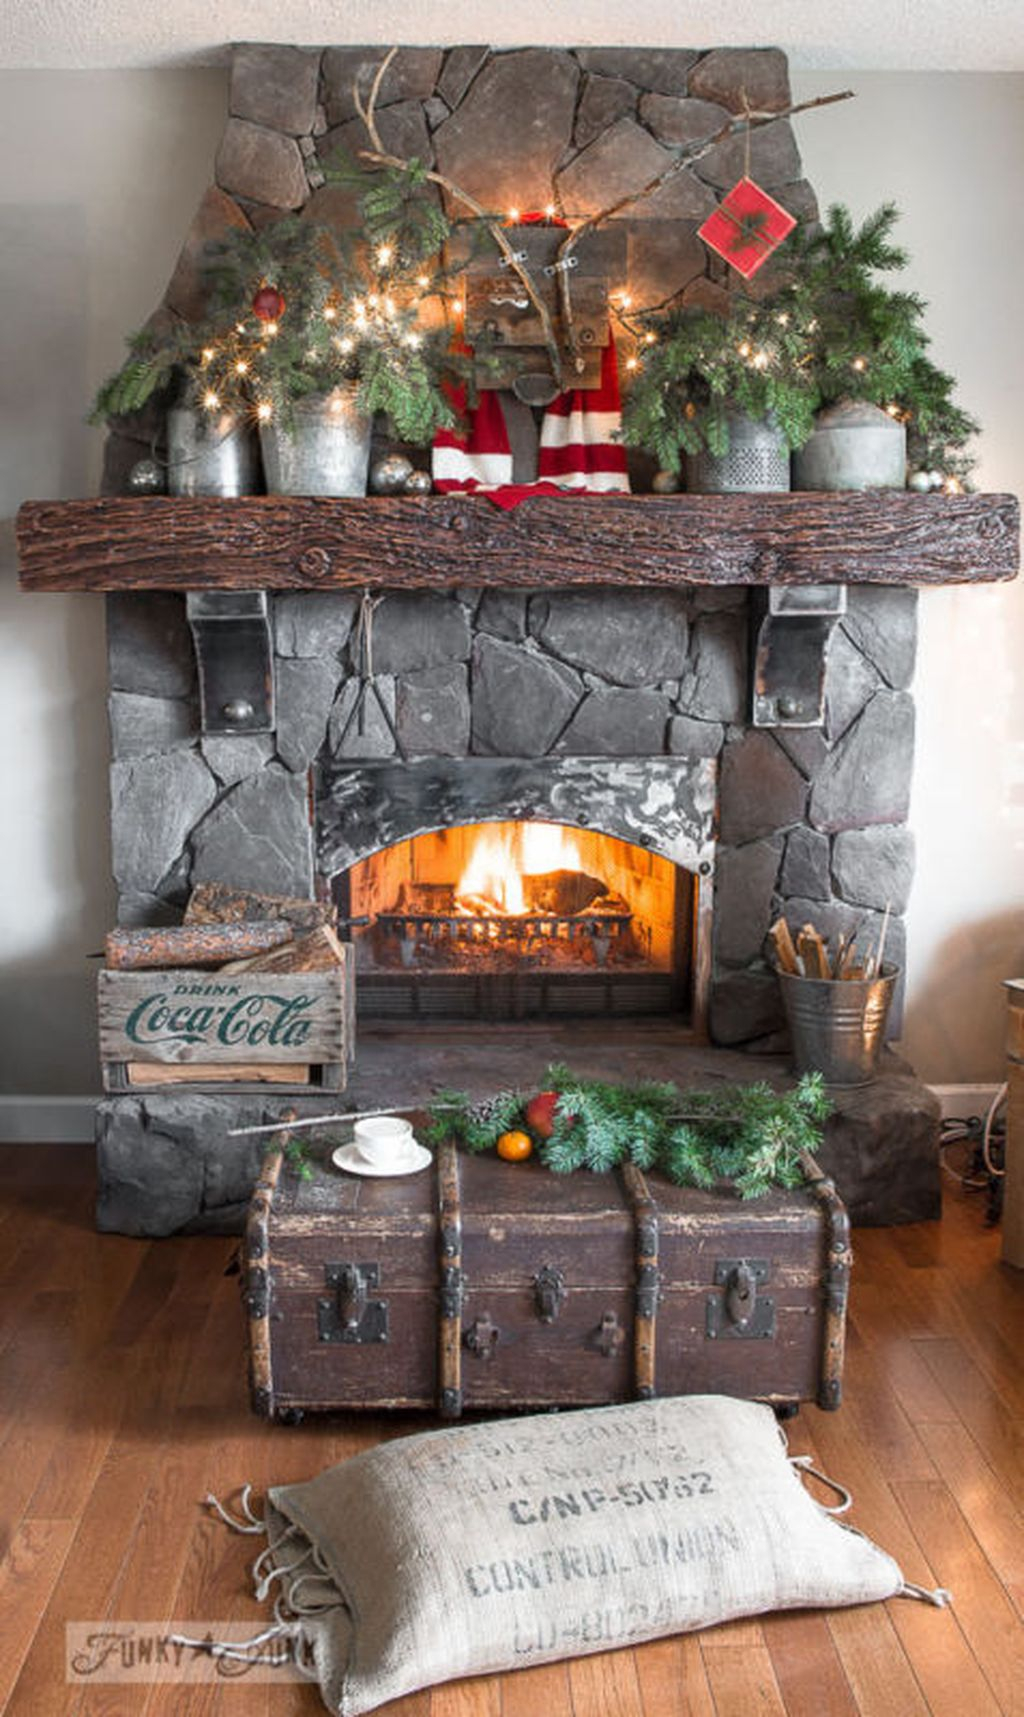 Inspiring Rustic Christmas Fireplace Ideas To Makes Your Home Warmer 84